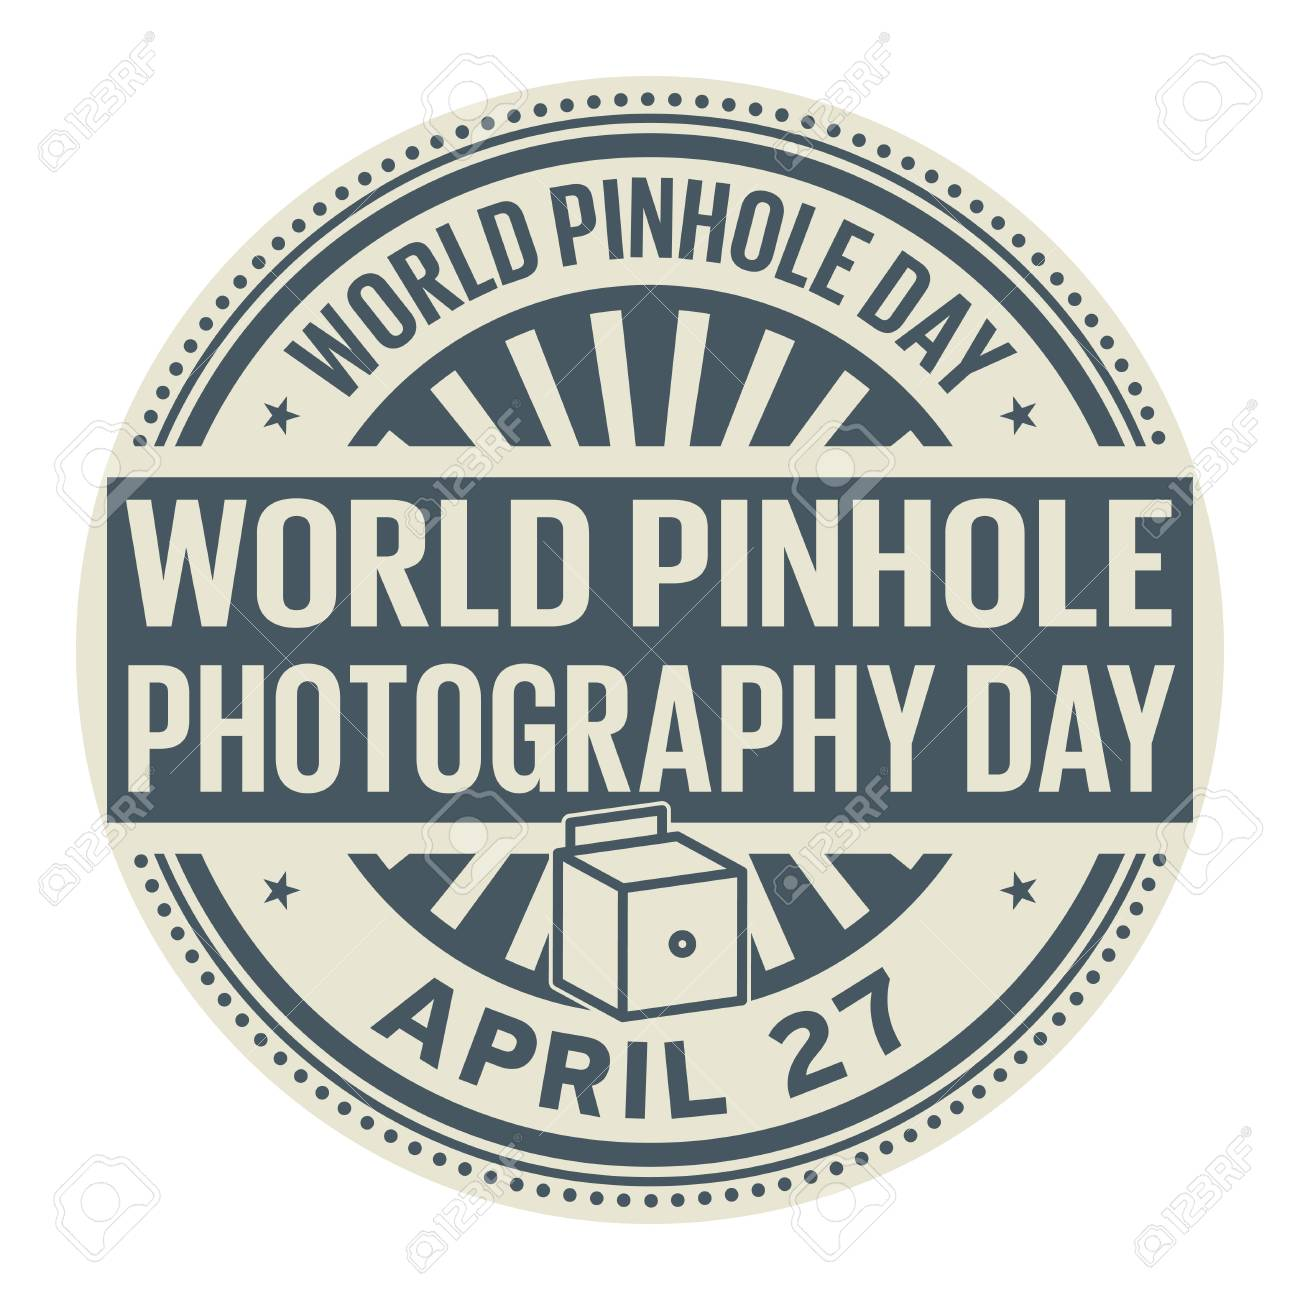 World Pinhole Photography Day April 27 Rubber Stamp Vector Illustration Stock